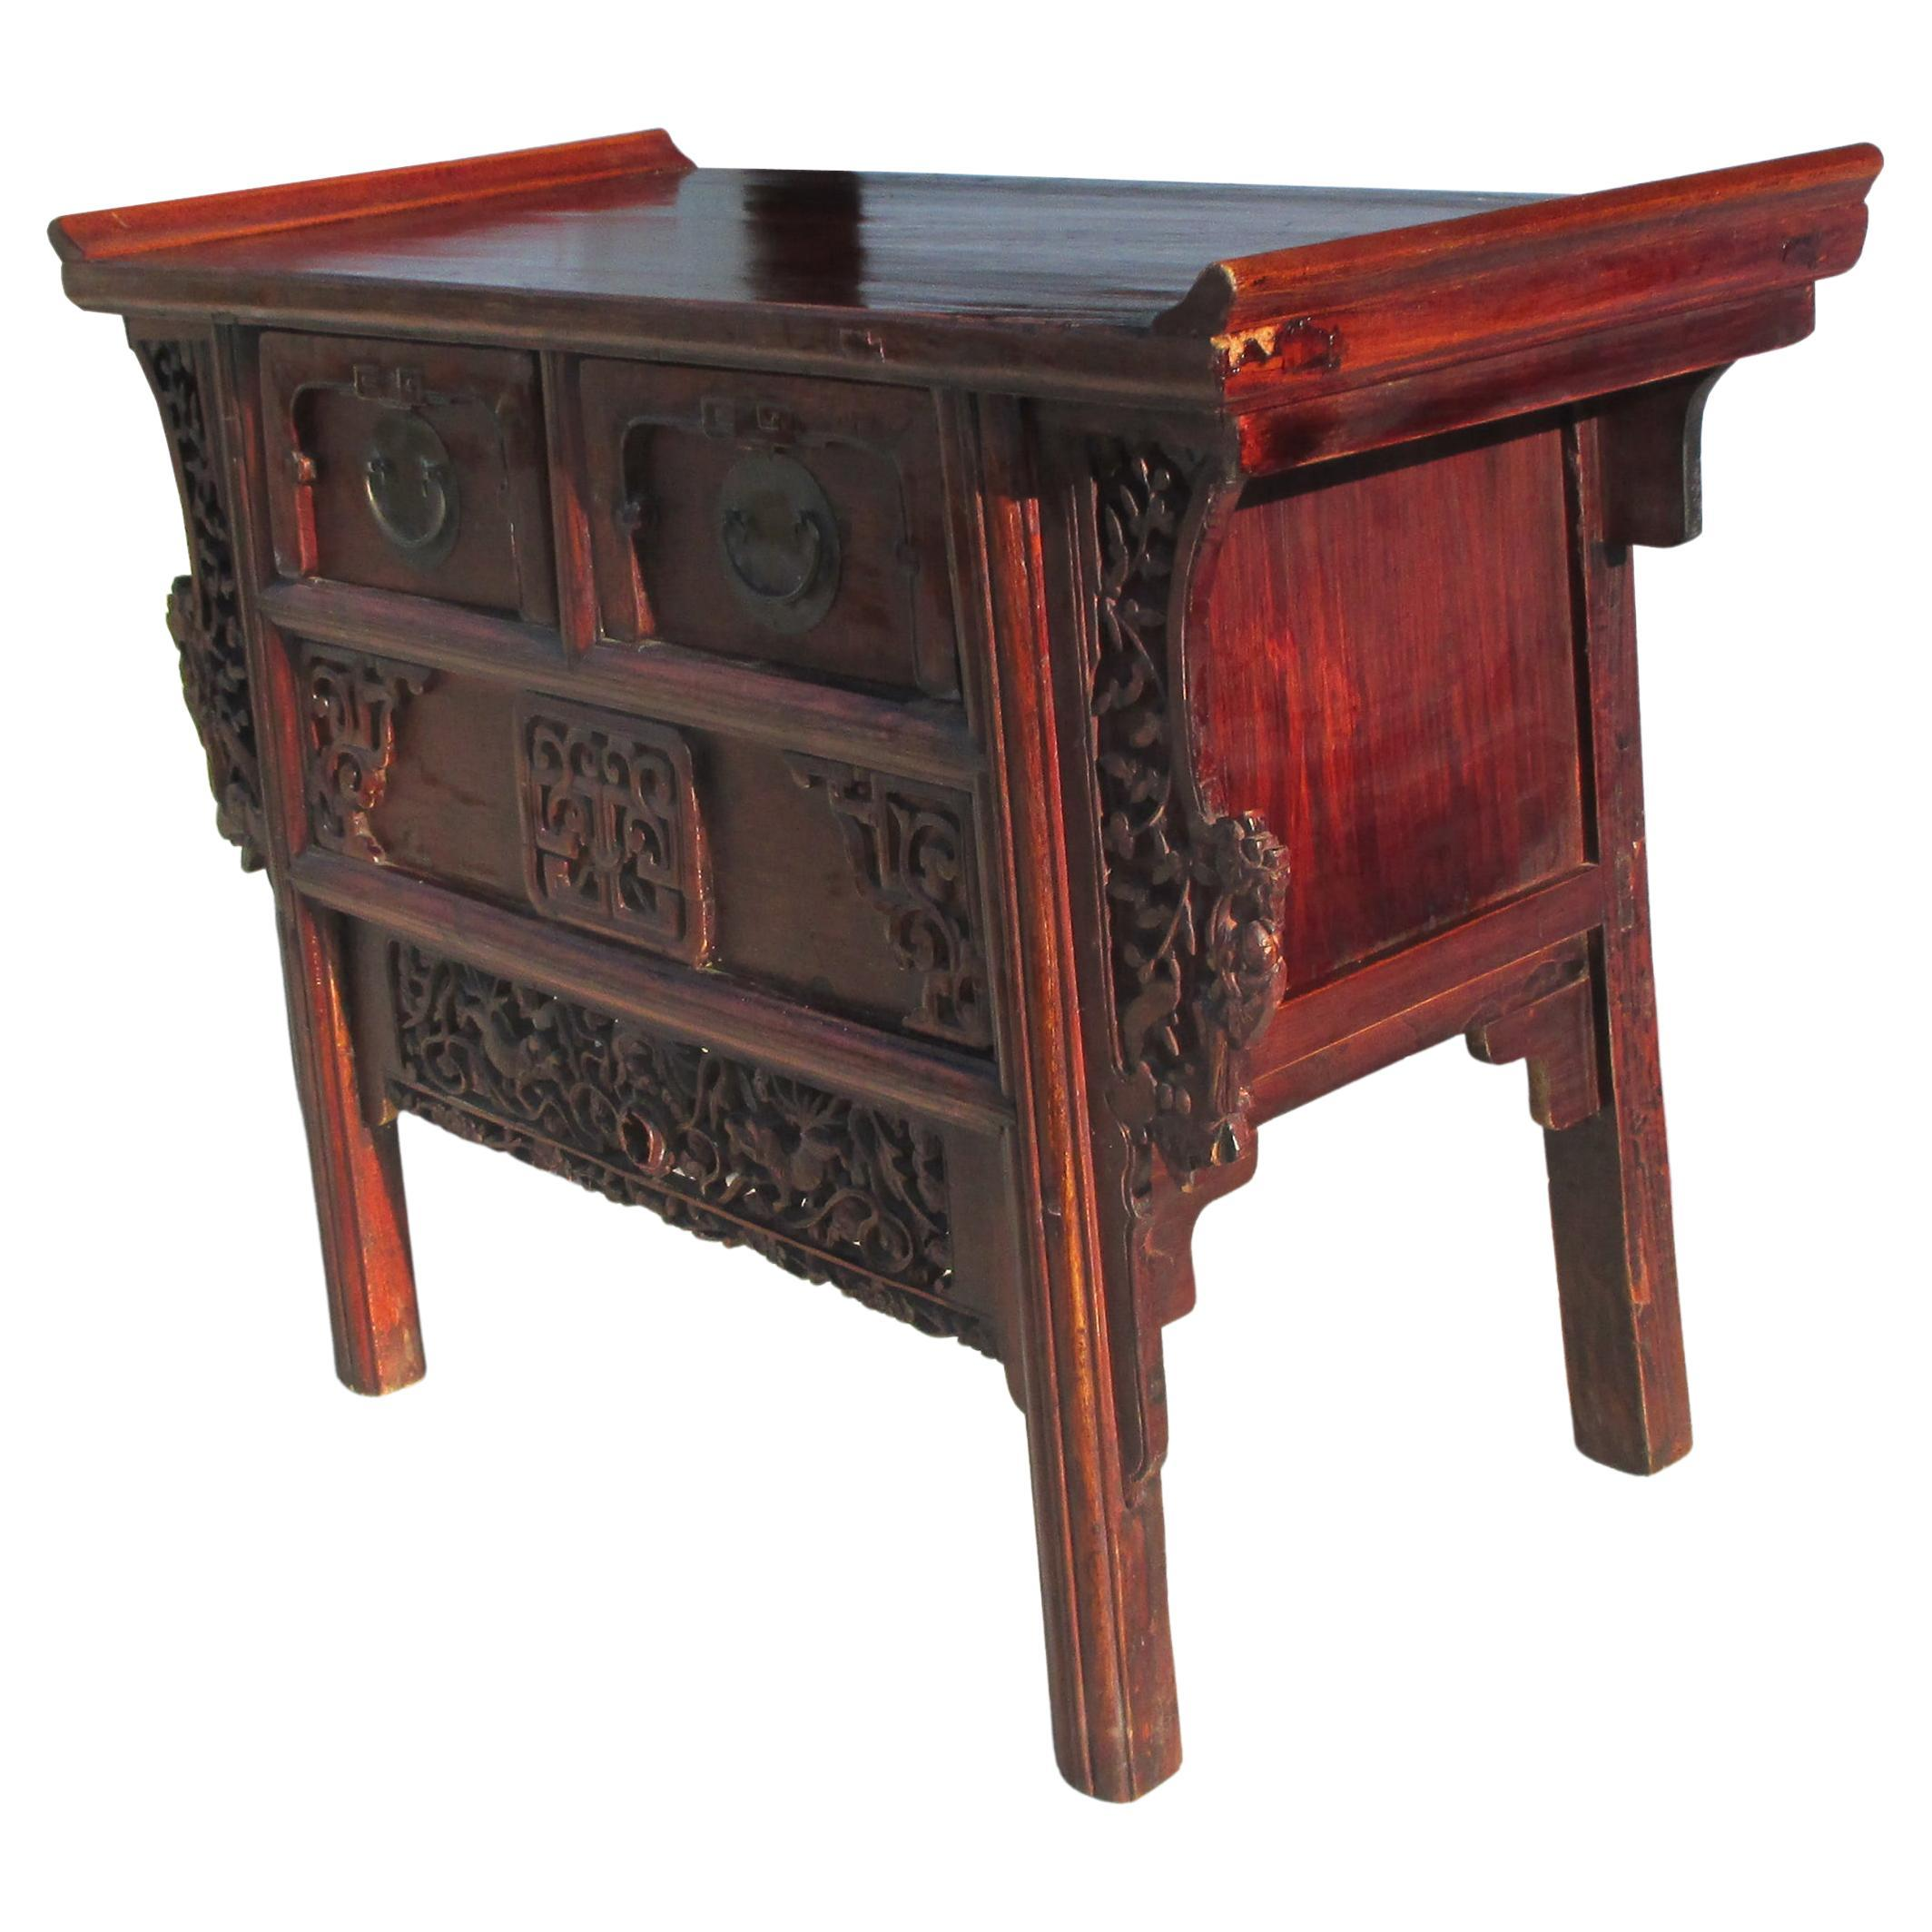 19th Century Qing Period Chinese Alter Console